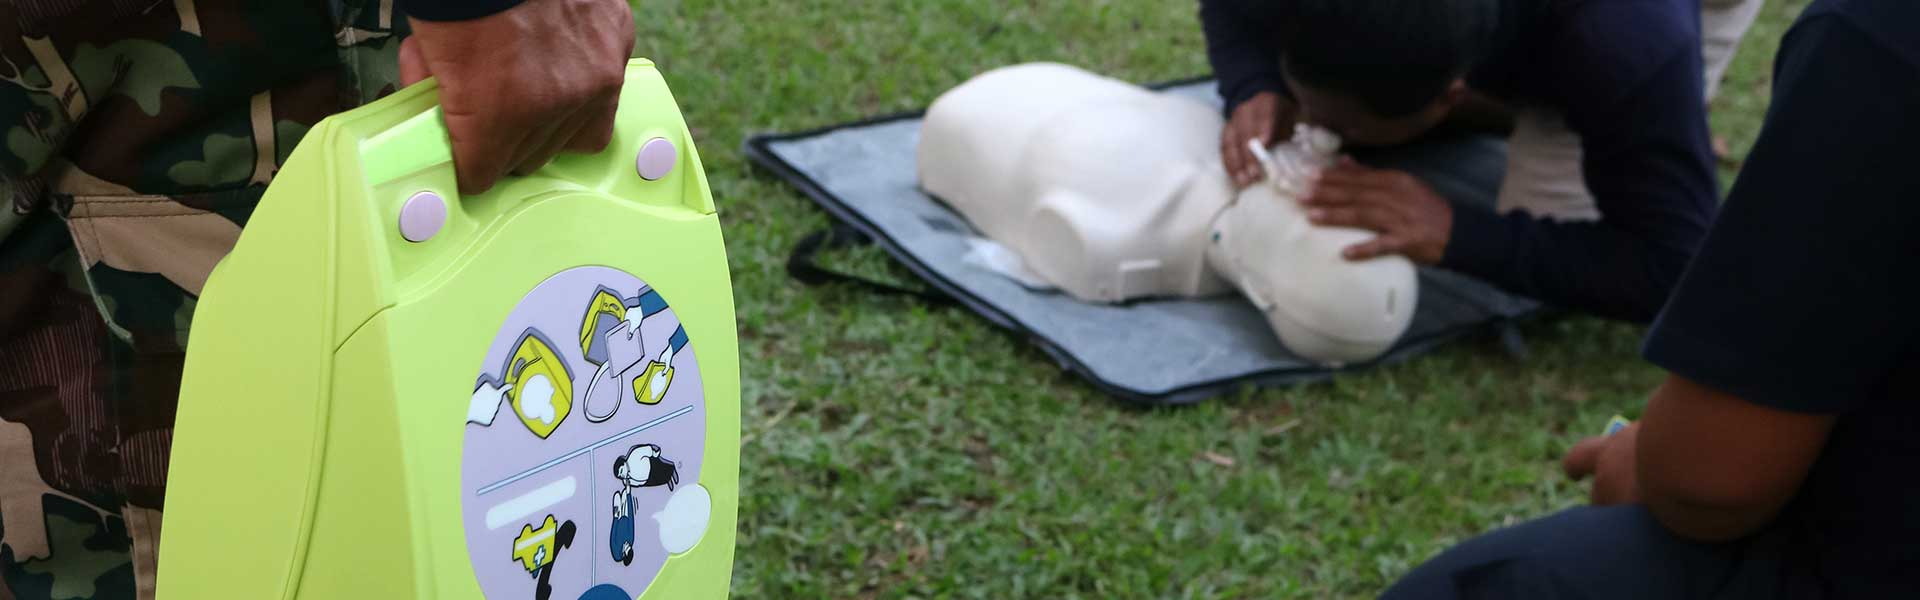 Safe Use of an AED Defibrillator